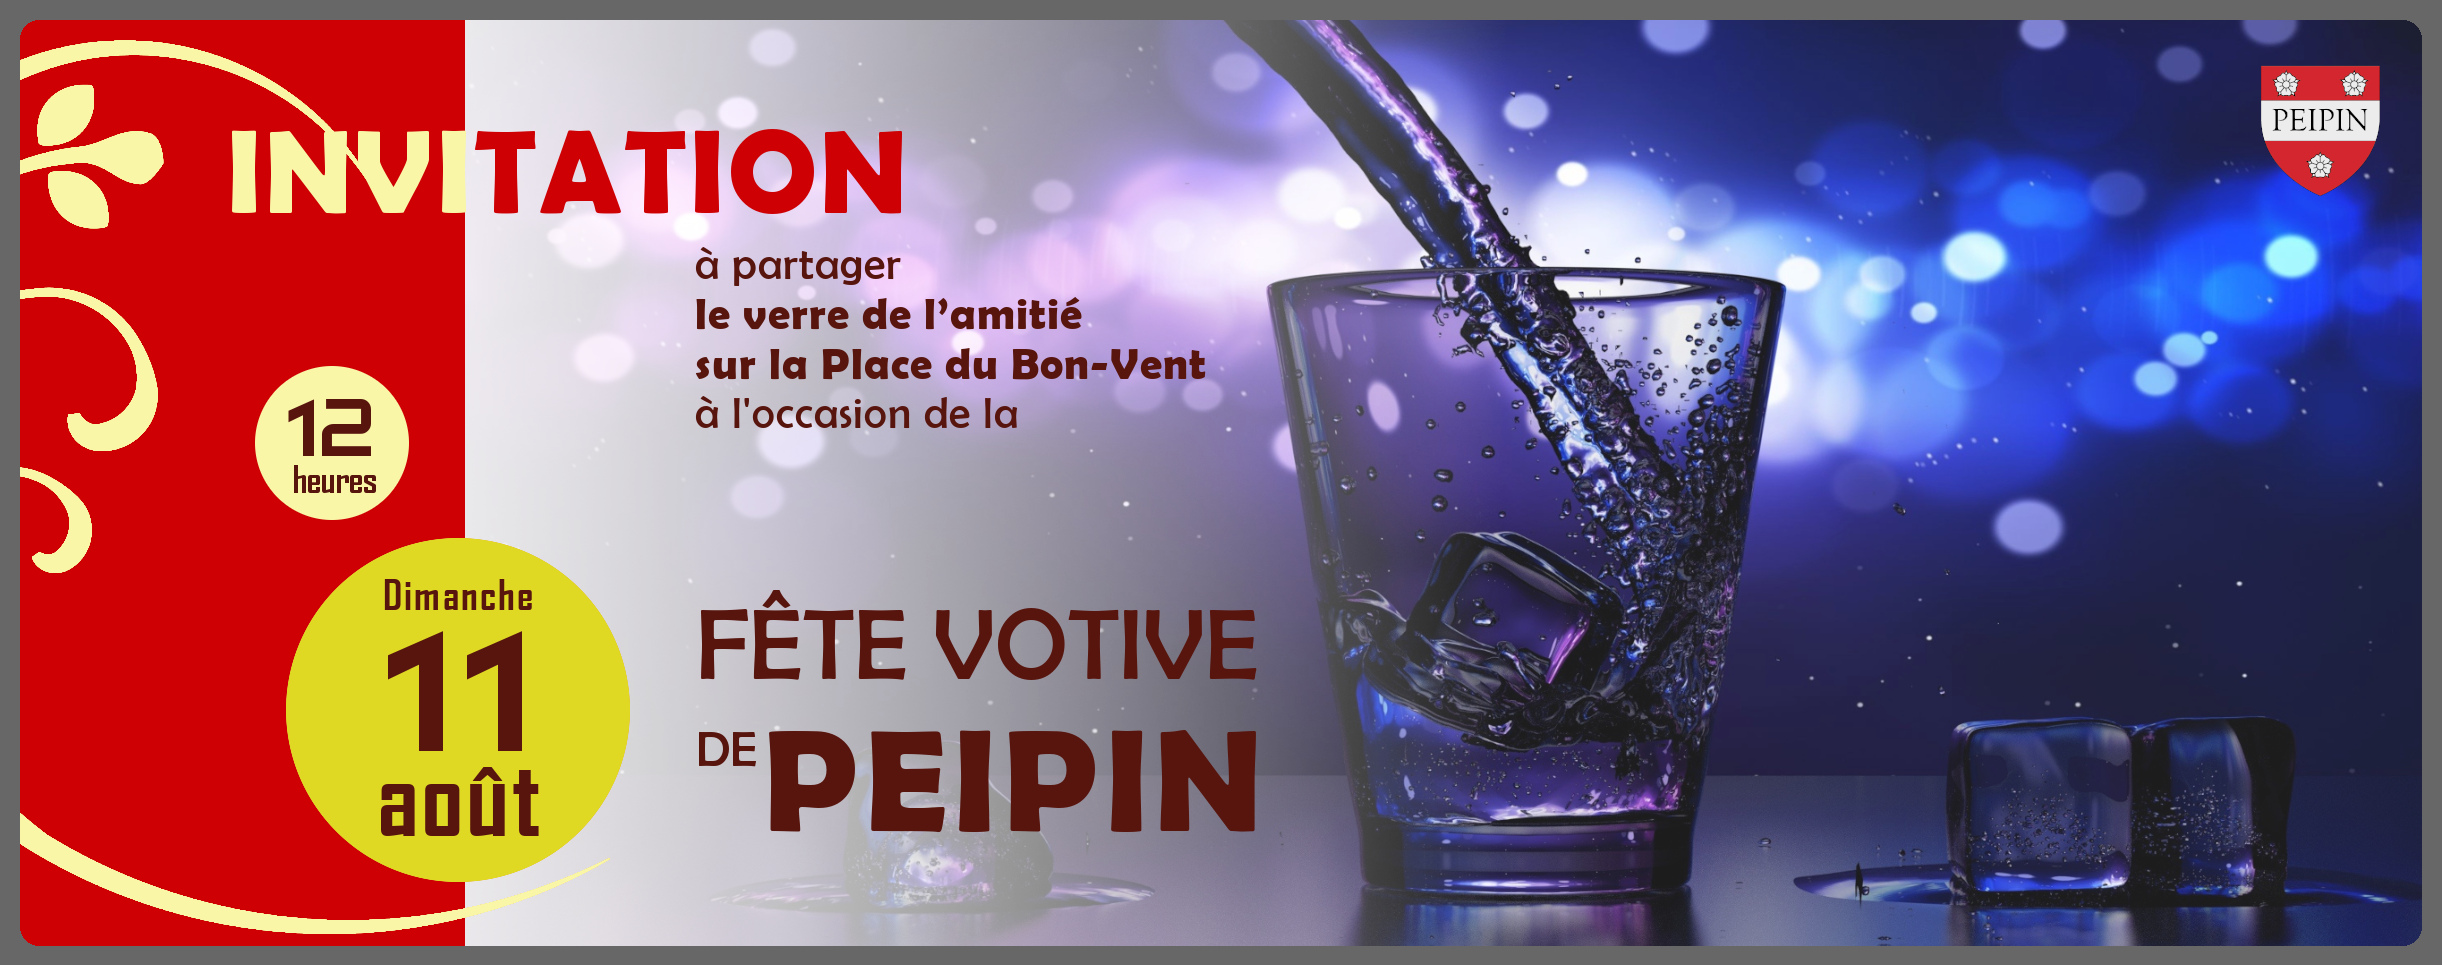 2019- INVITATION FÊTE VOTIVE-web